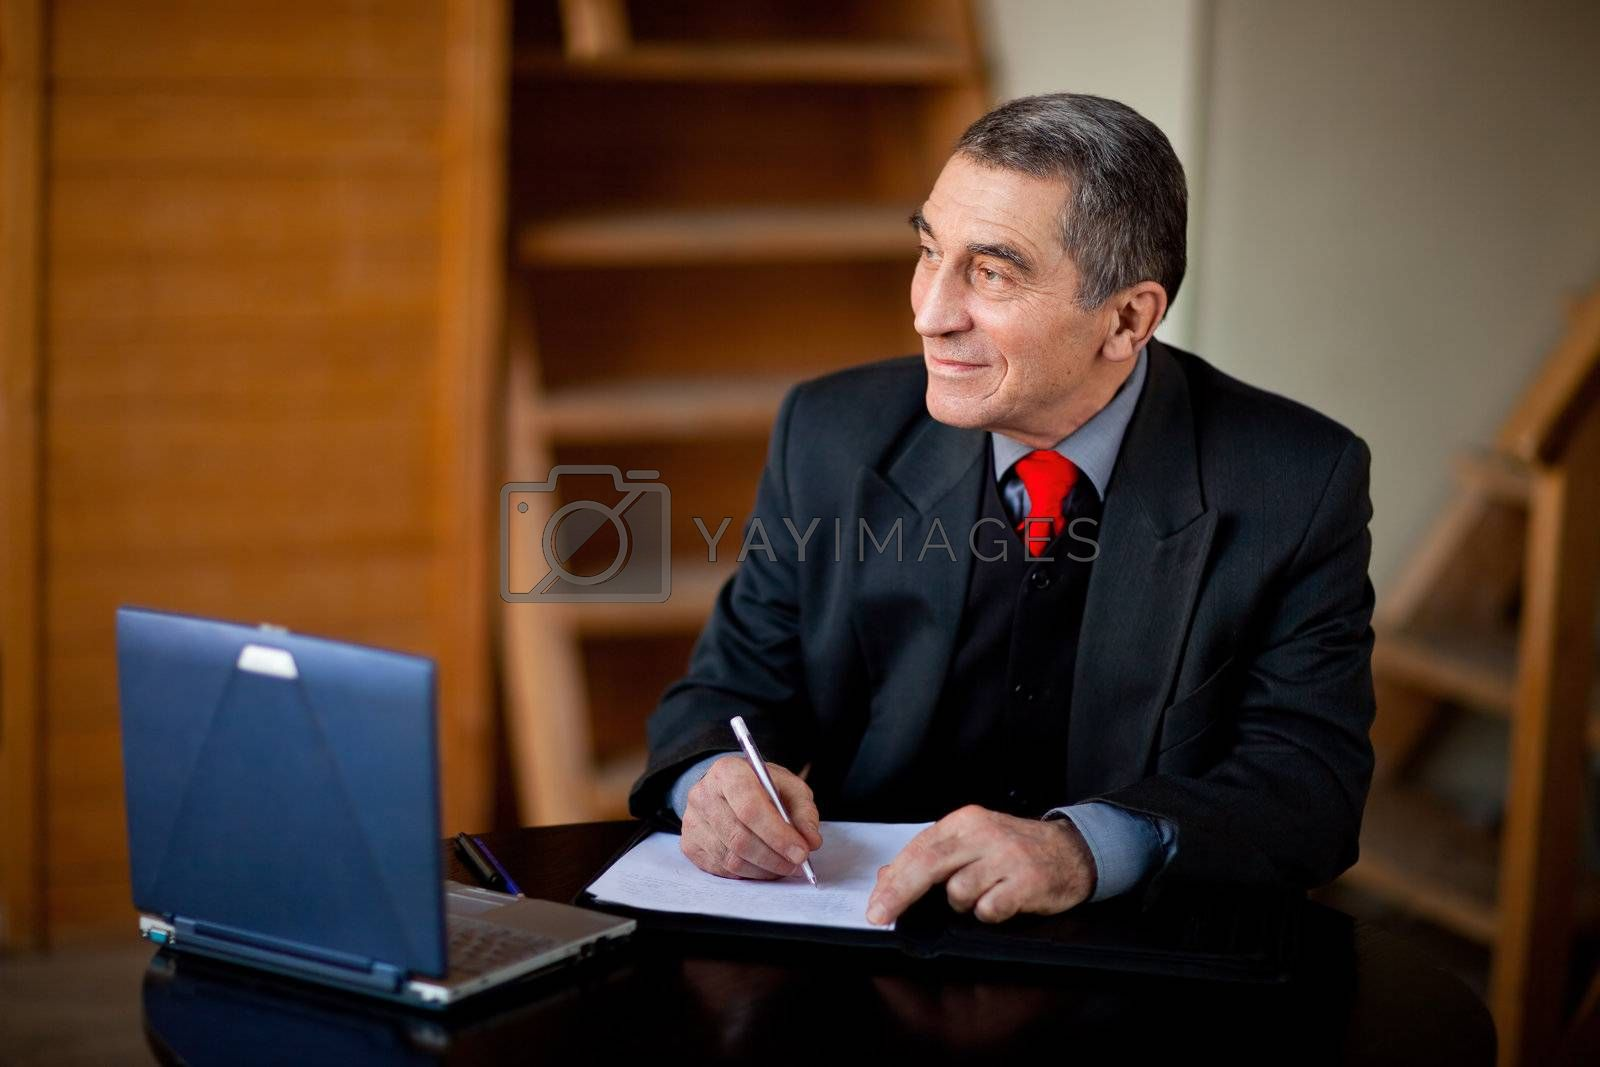 Senior businessman writing and working with document indoors